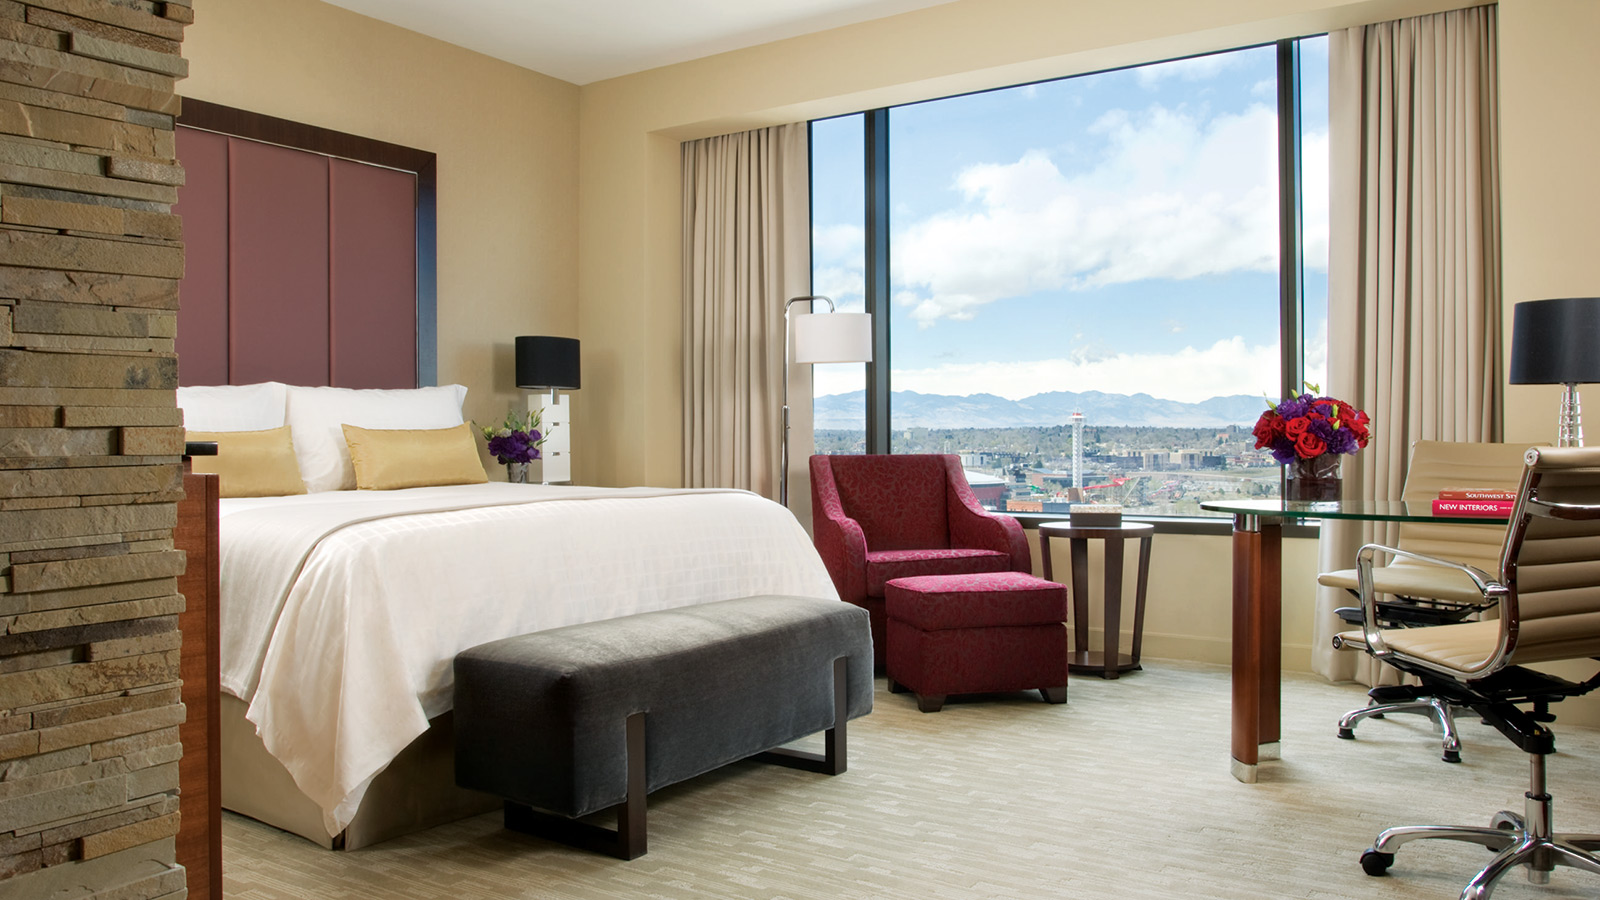 Deluxe Executive Room at Four Seasons Hotel in Downtown Denver